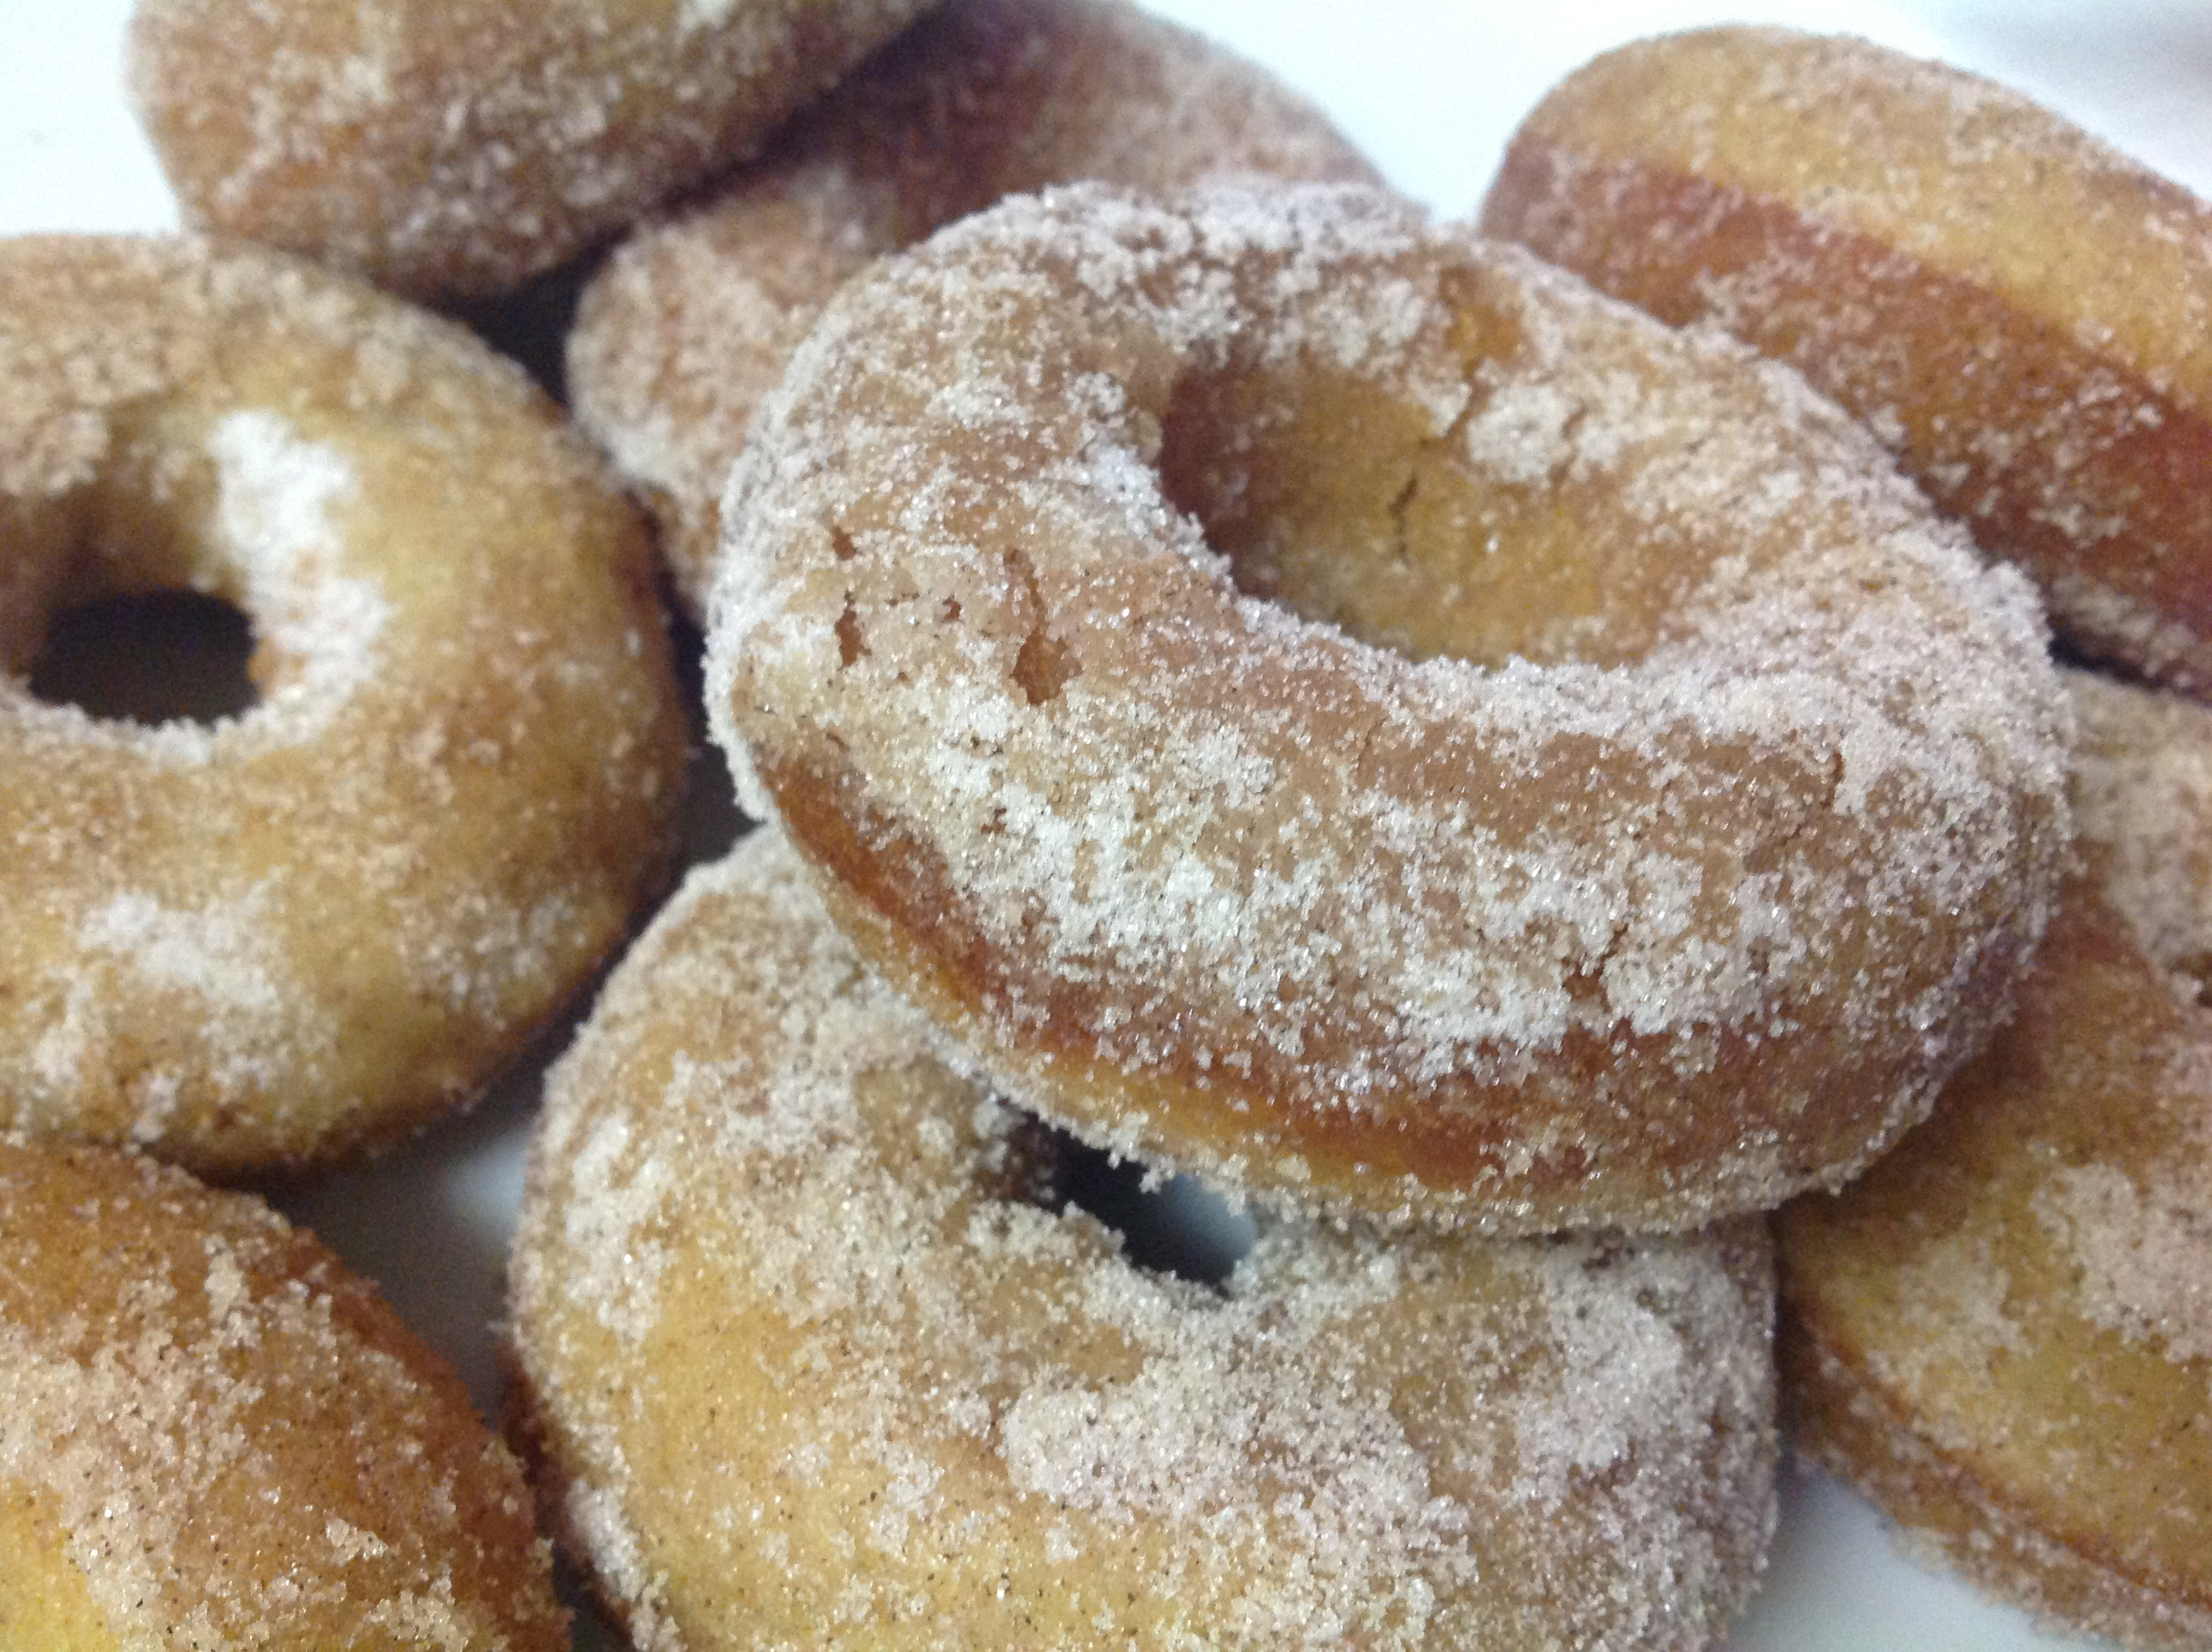 Baked Apple Cider Donuts with Terhune Orchards Apple Cider